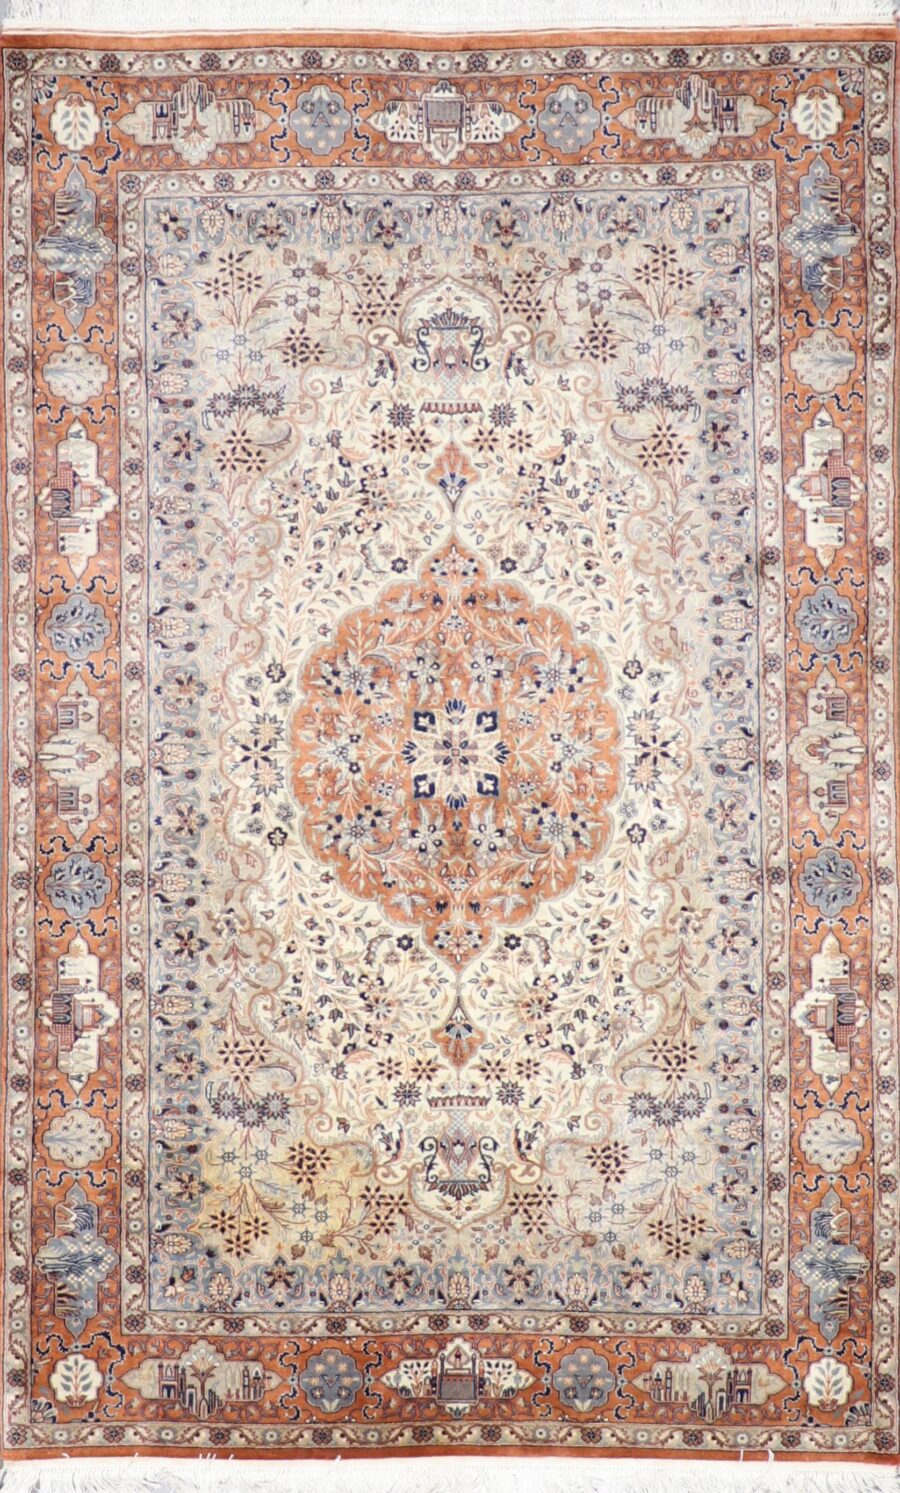 """4'4""""x7' Traditional Orange Wool & Silk Hand-Knotted Rug - Direct Rug Import   Rugs in Chicago, Indiana,South Bend,Granger"""